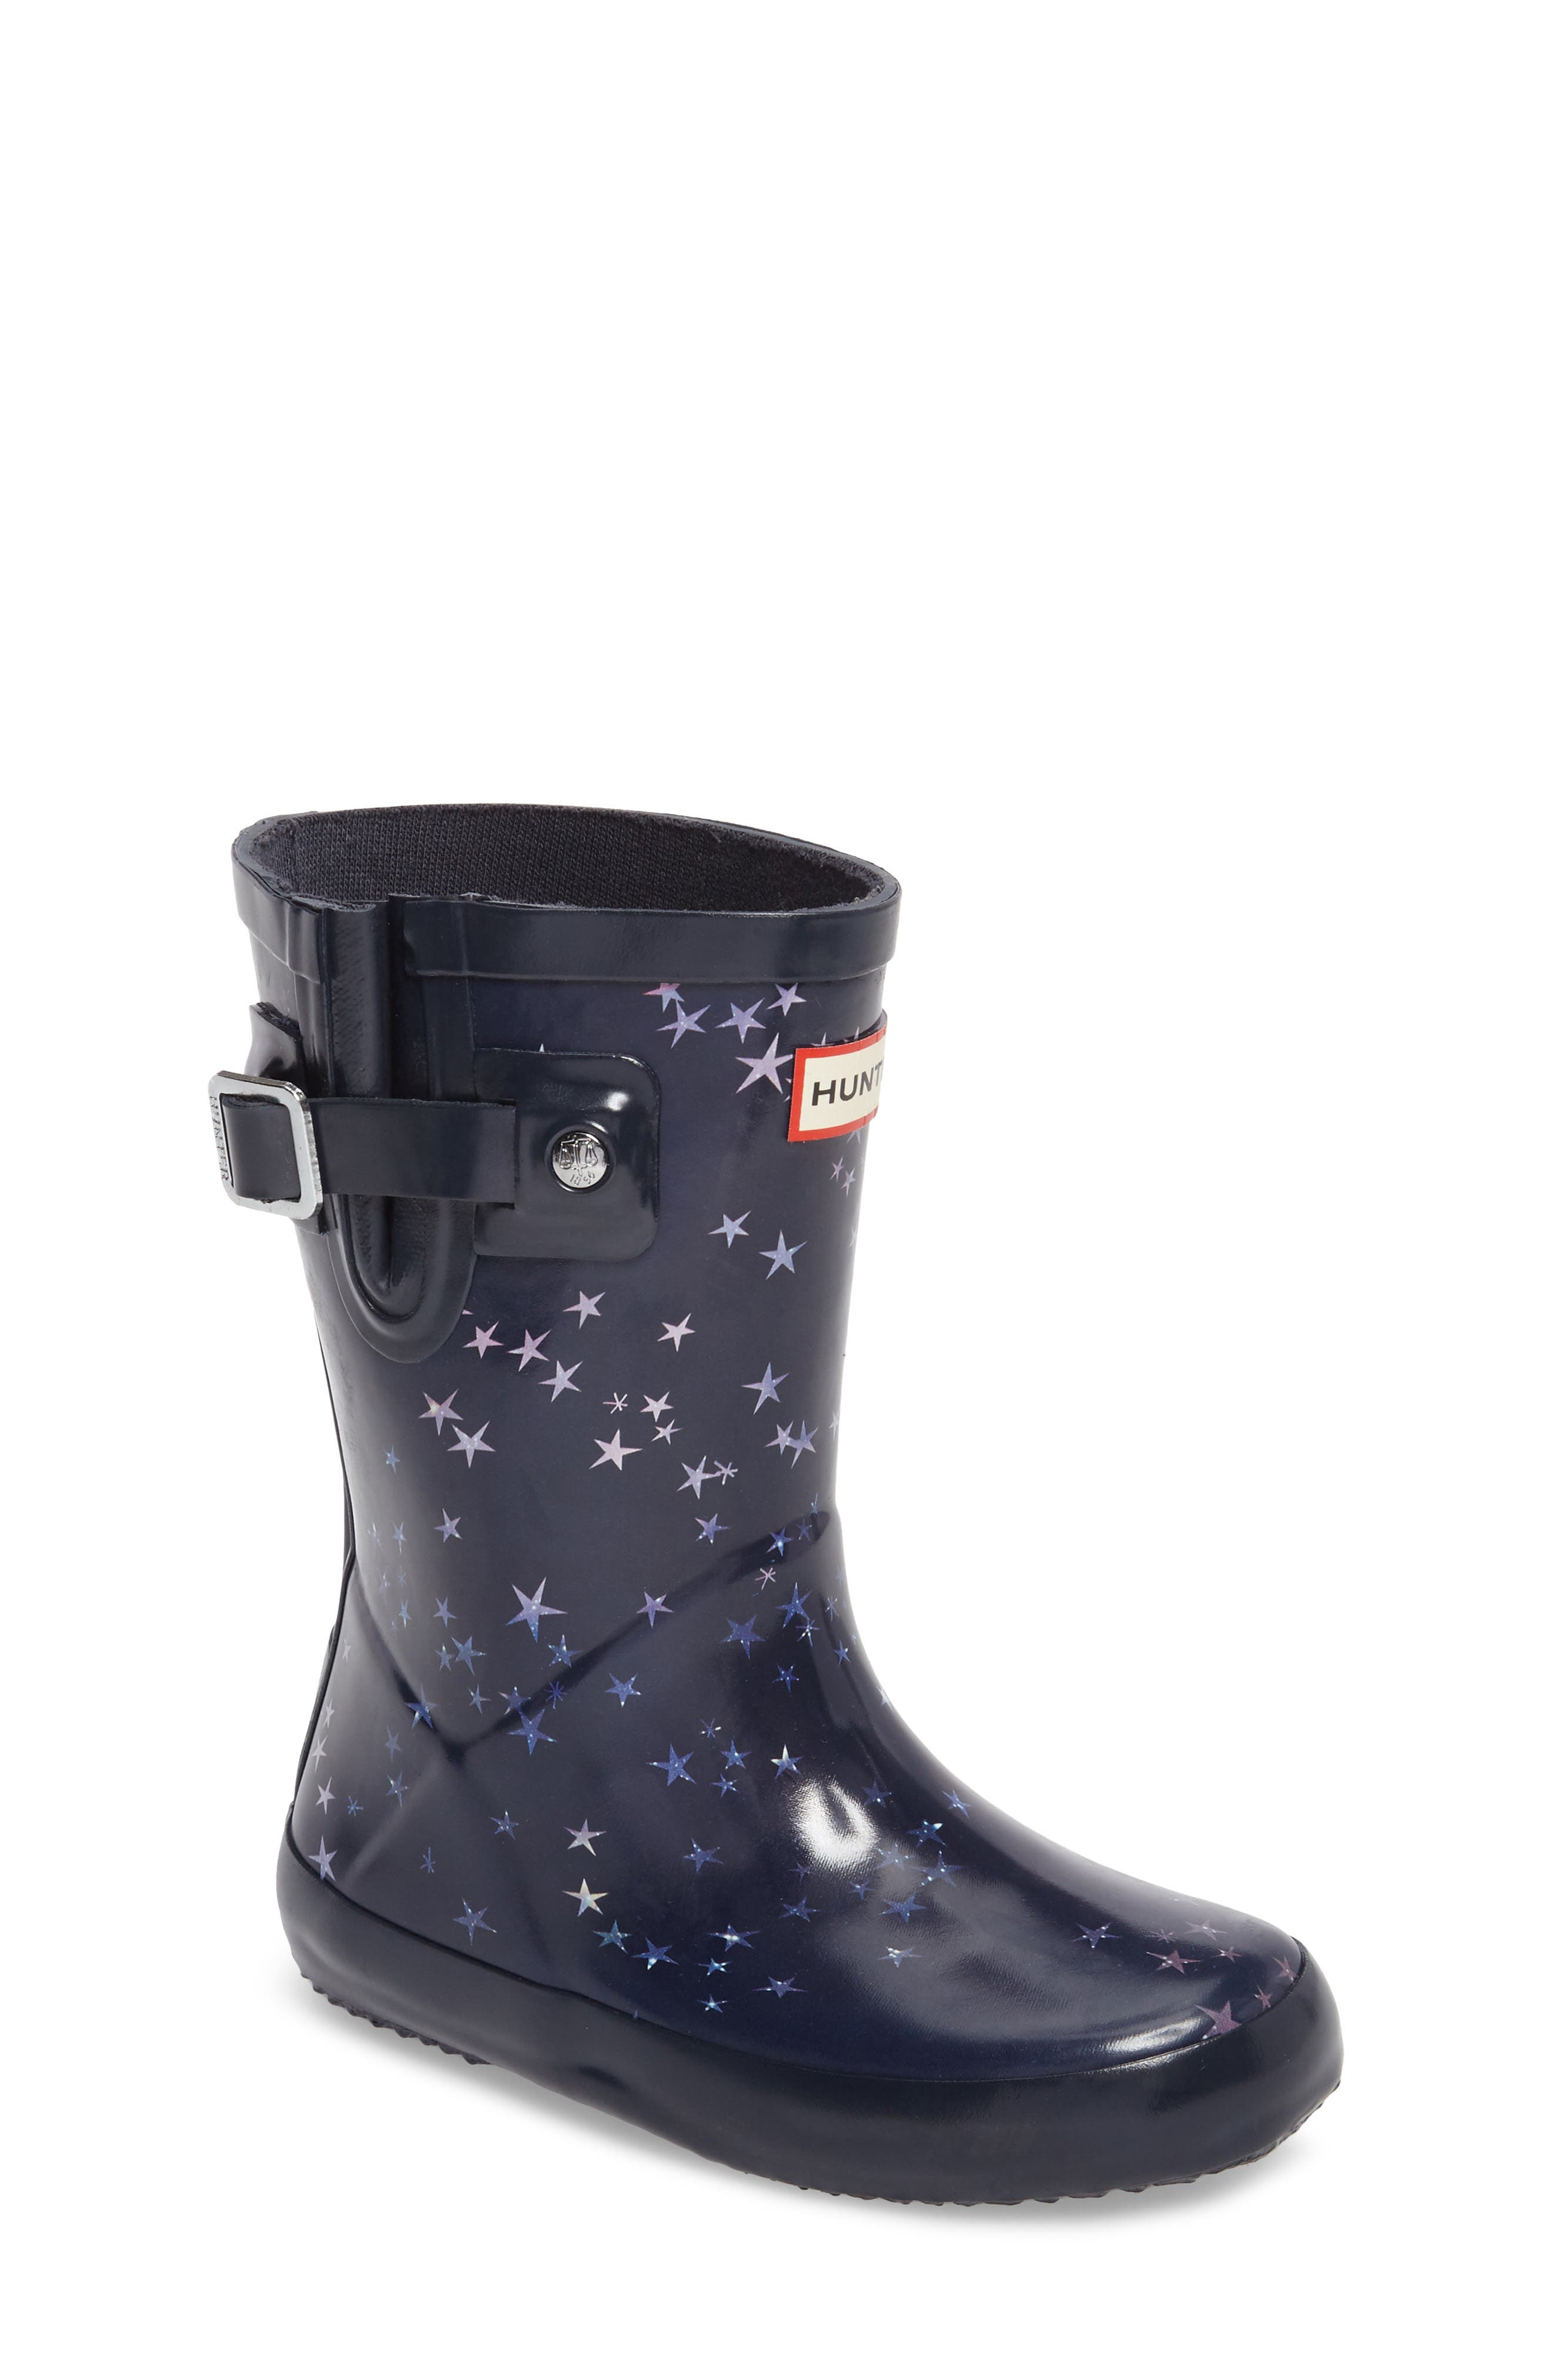 Flat Sole Constellation Waterproof Rain Boot,                             Main thumbnail 1, color,                             483